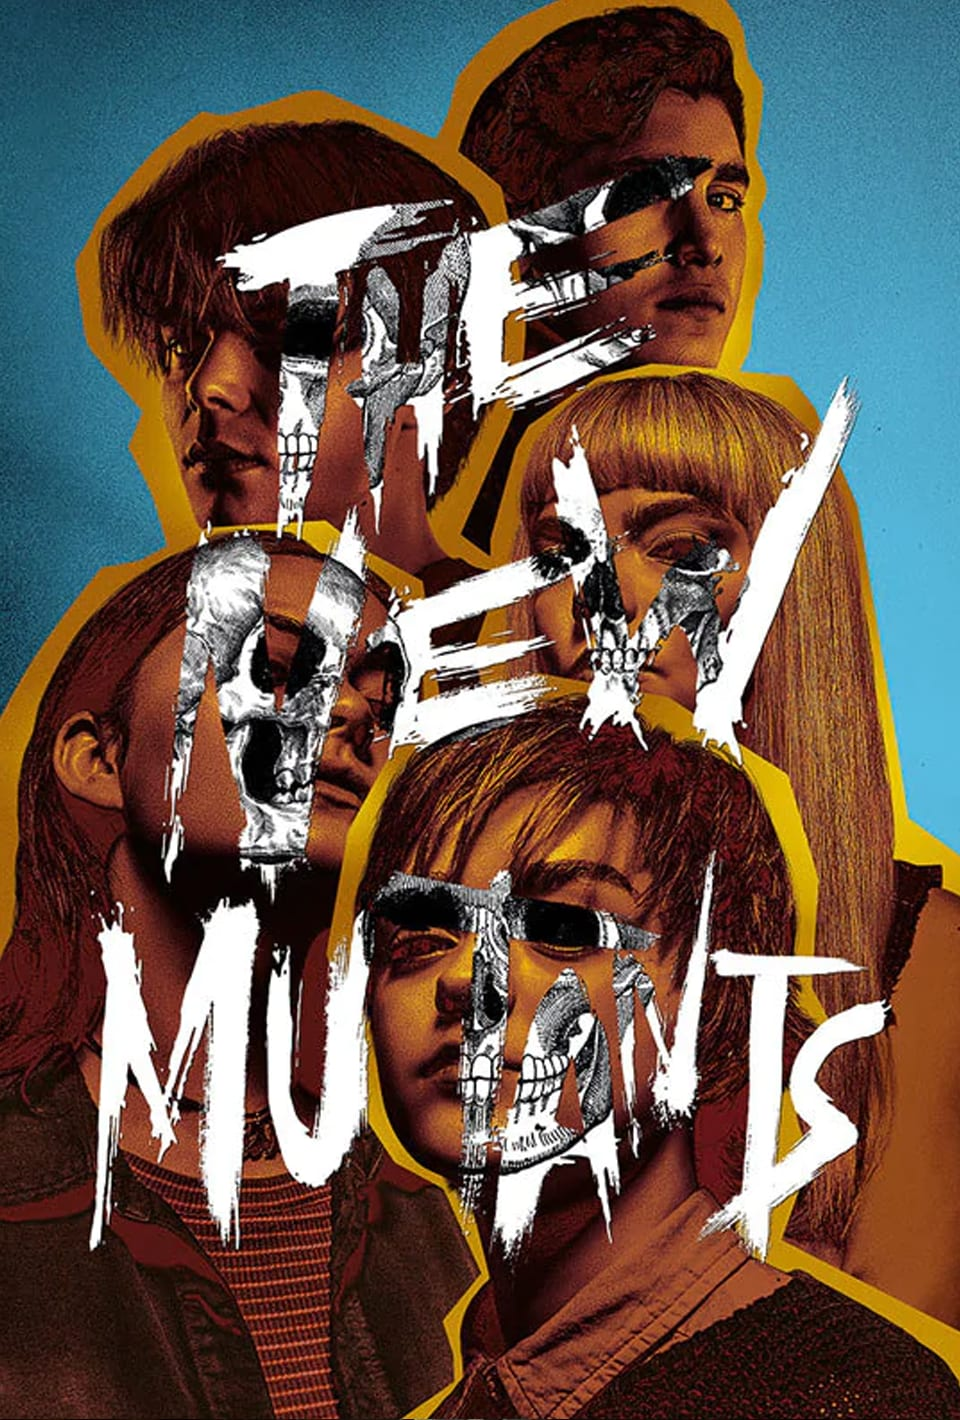 Marvel's The New Mutants movie poster